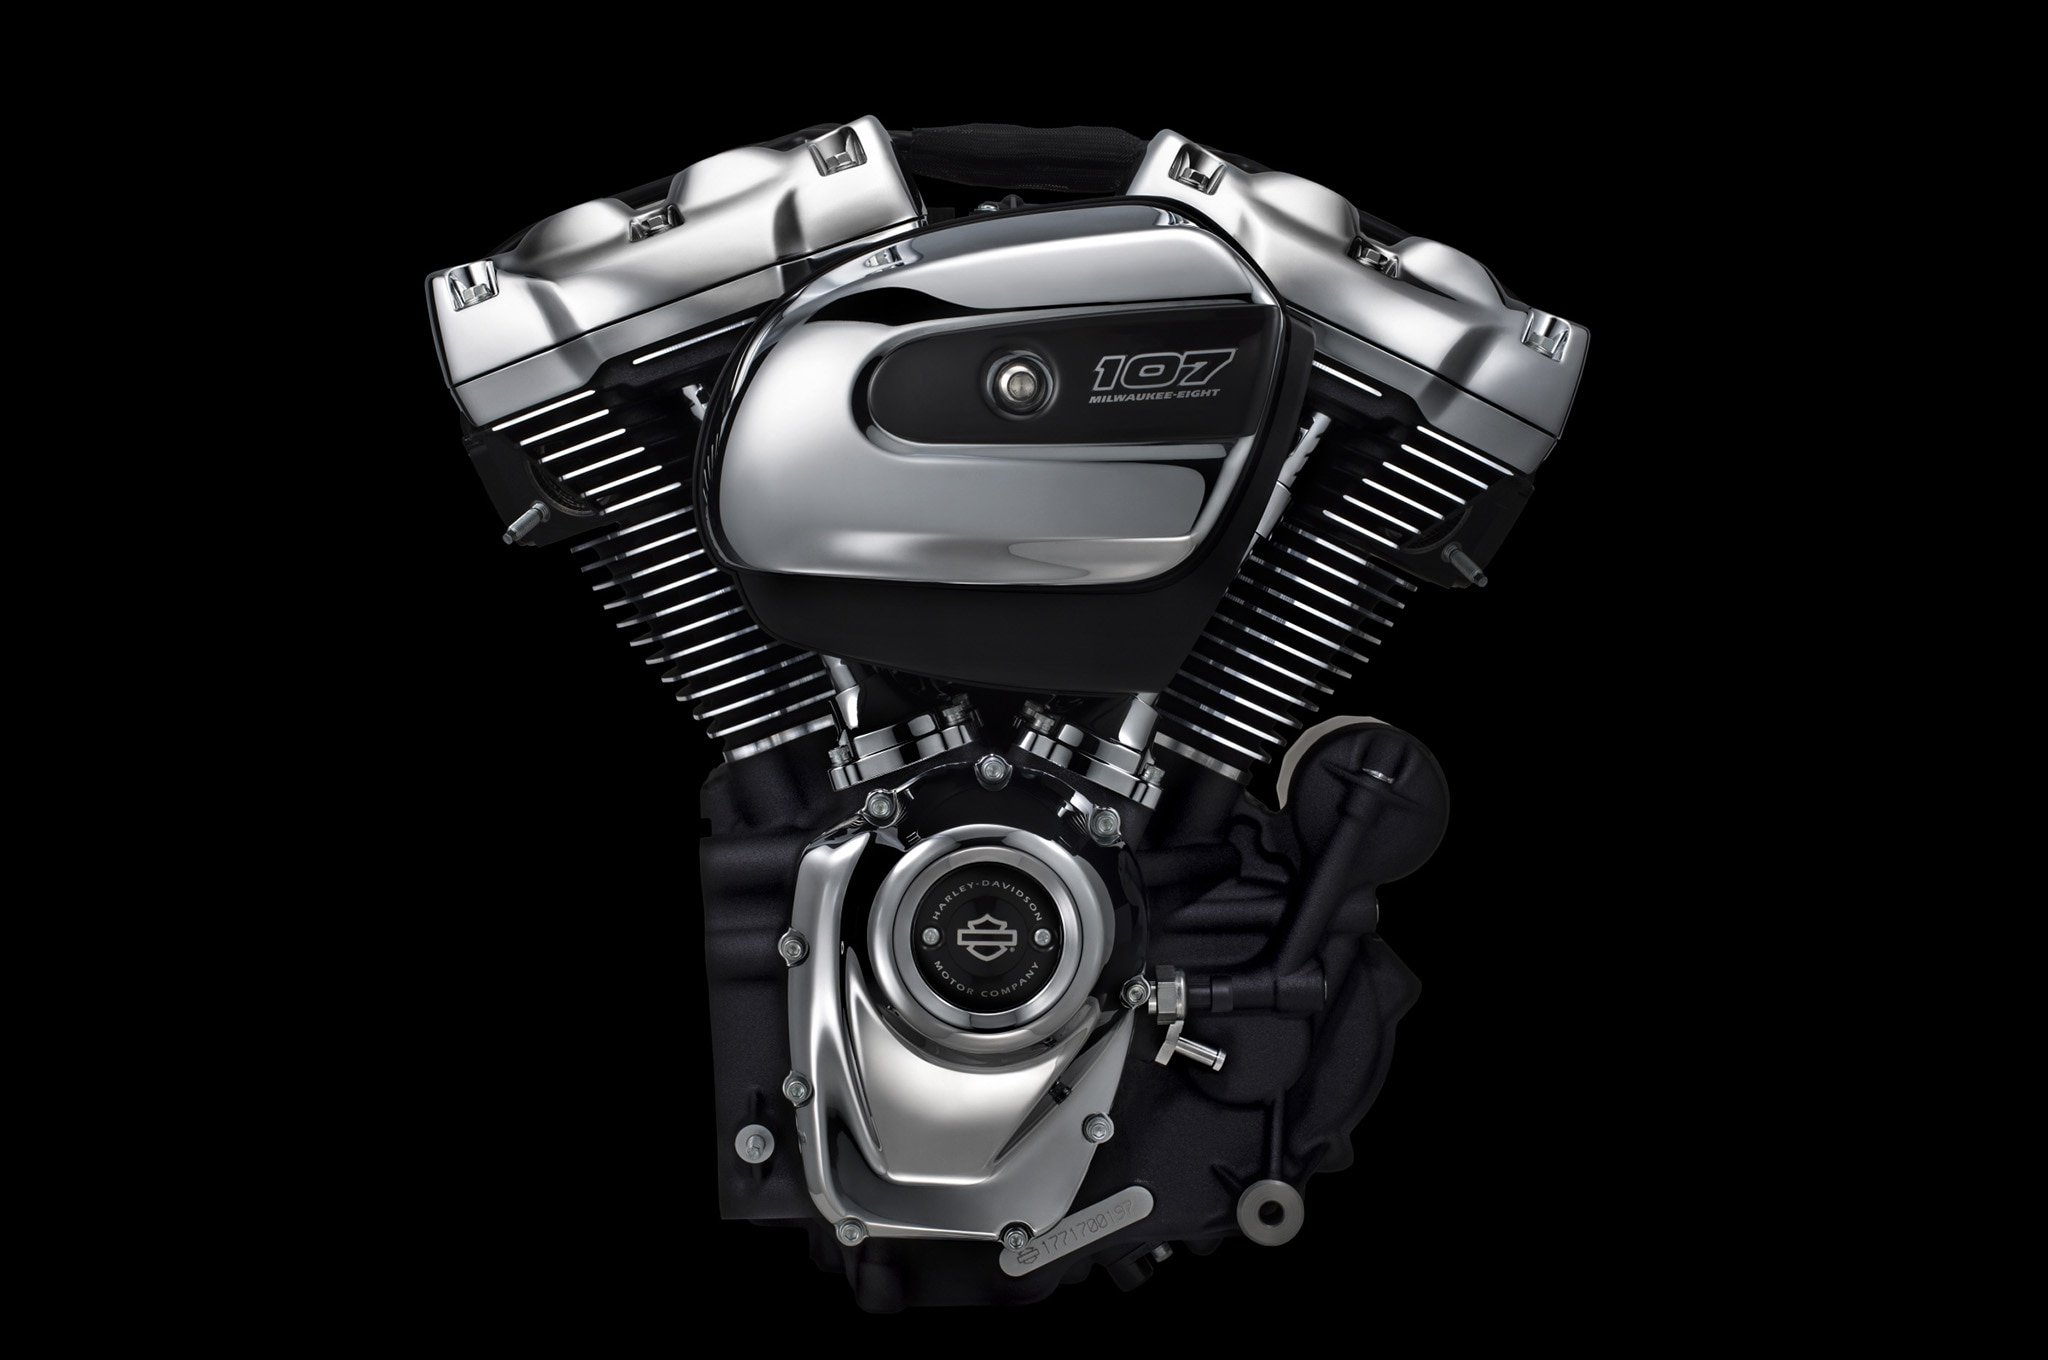 Harley-Davidson Brings Out First New Motor in 15 Years